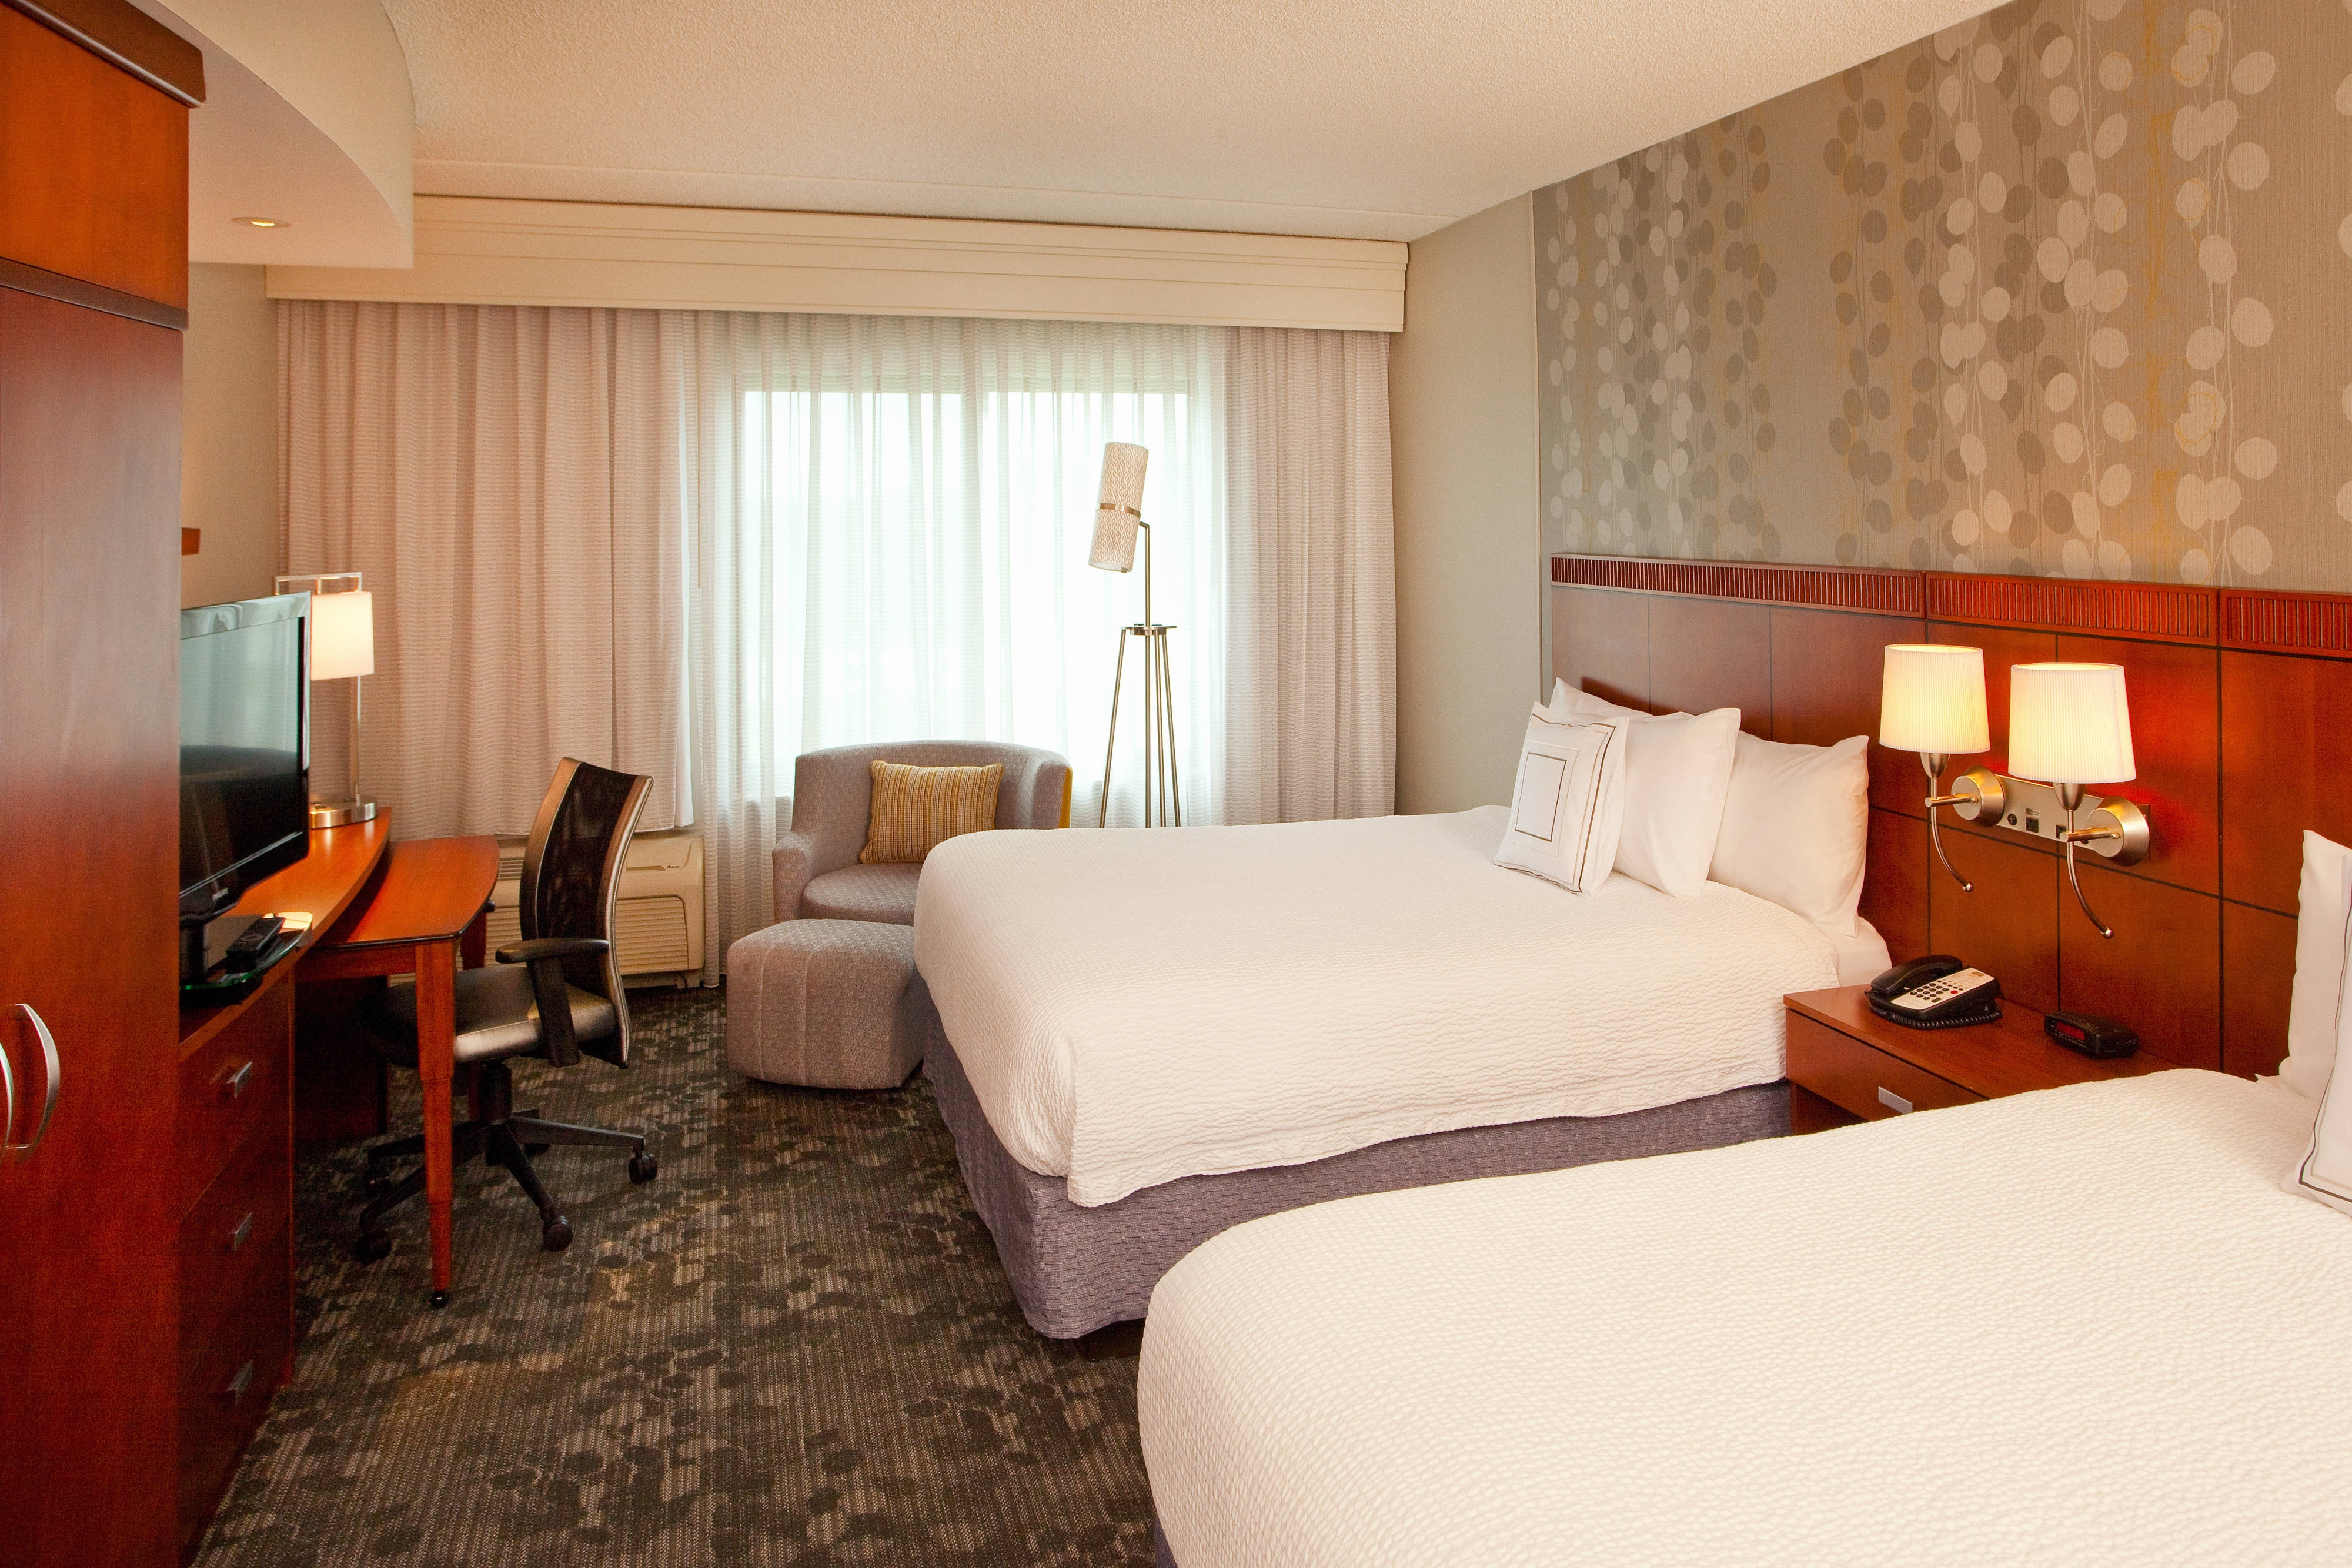 Guest Room, Double